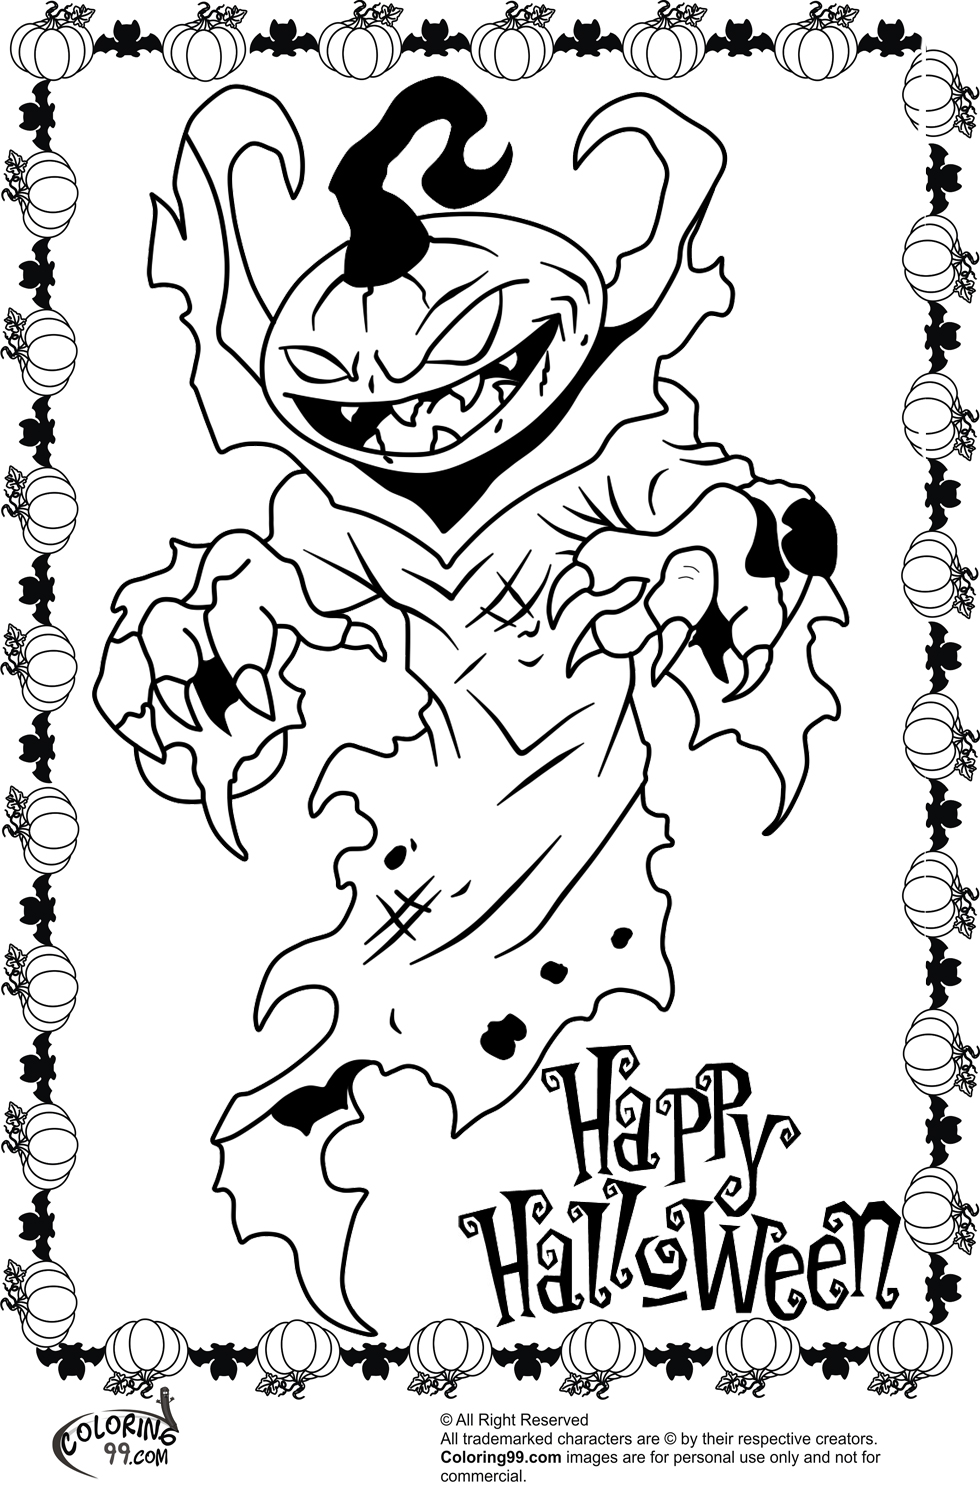 coloring halloween doodle pages 382 best doodle monster coloring pages images on doodle coloring halloween pages